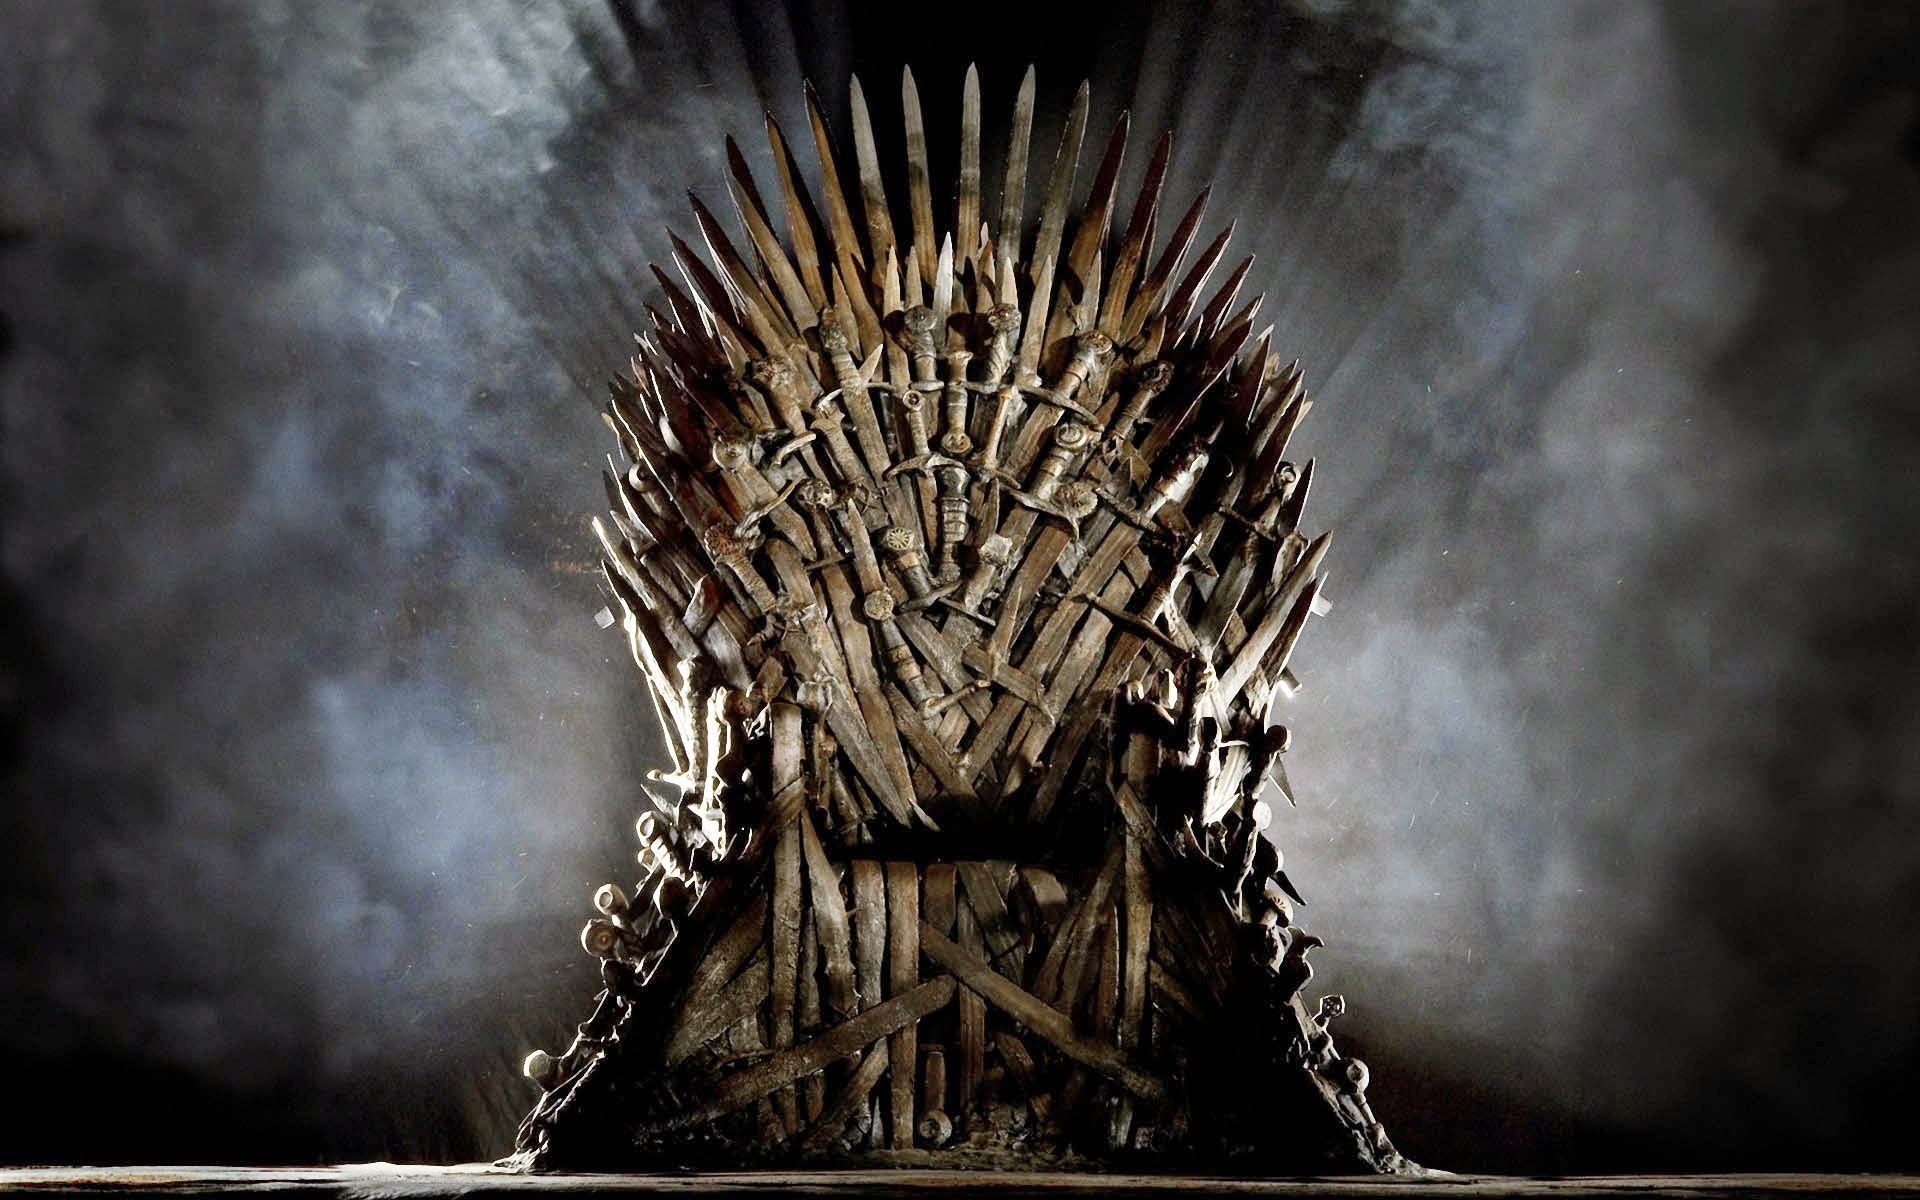 game-of-thrones-iron-throne_geek-gadgets